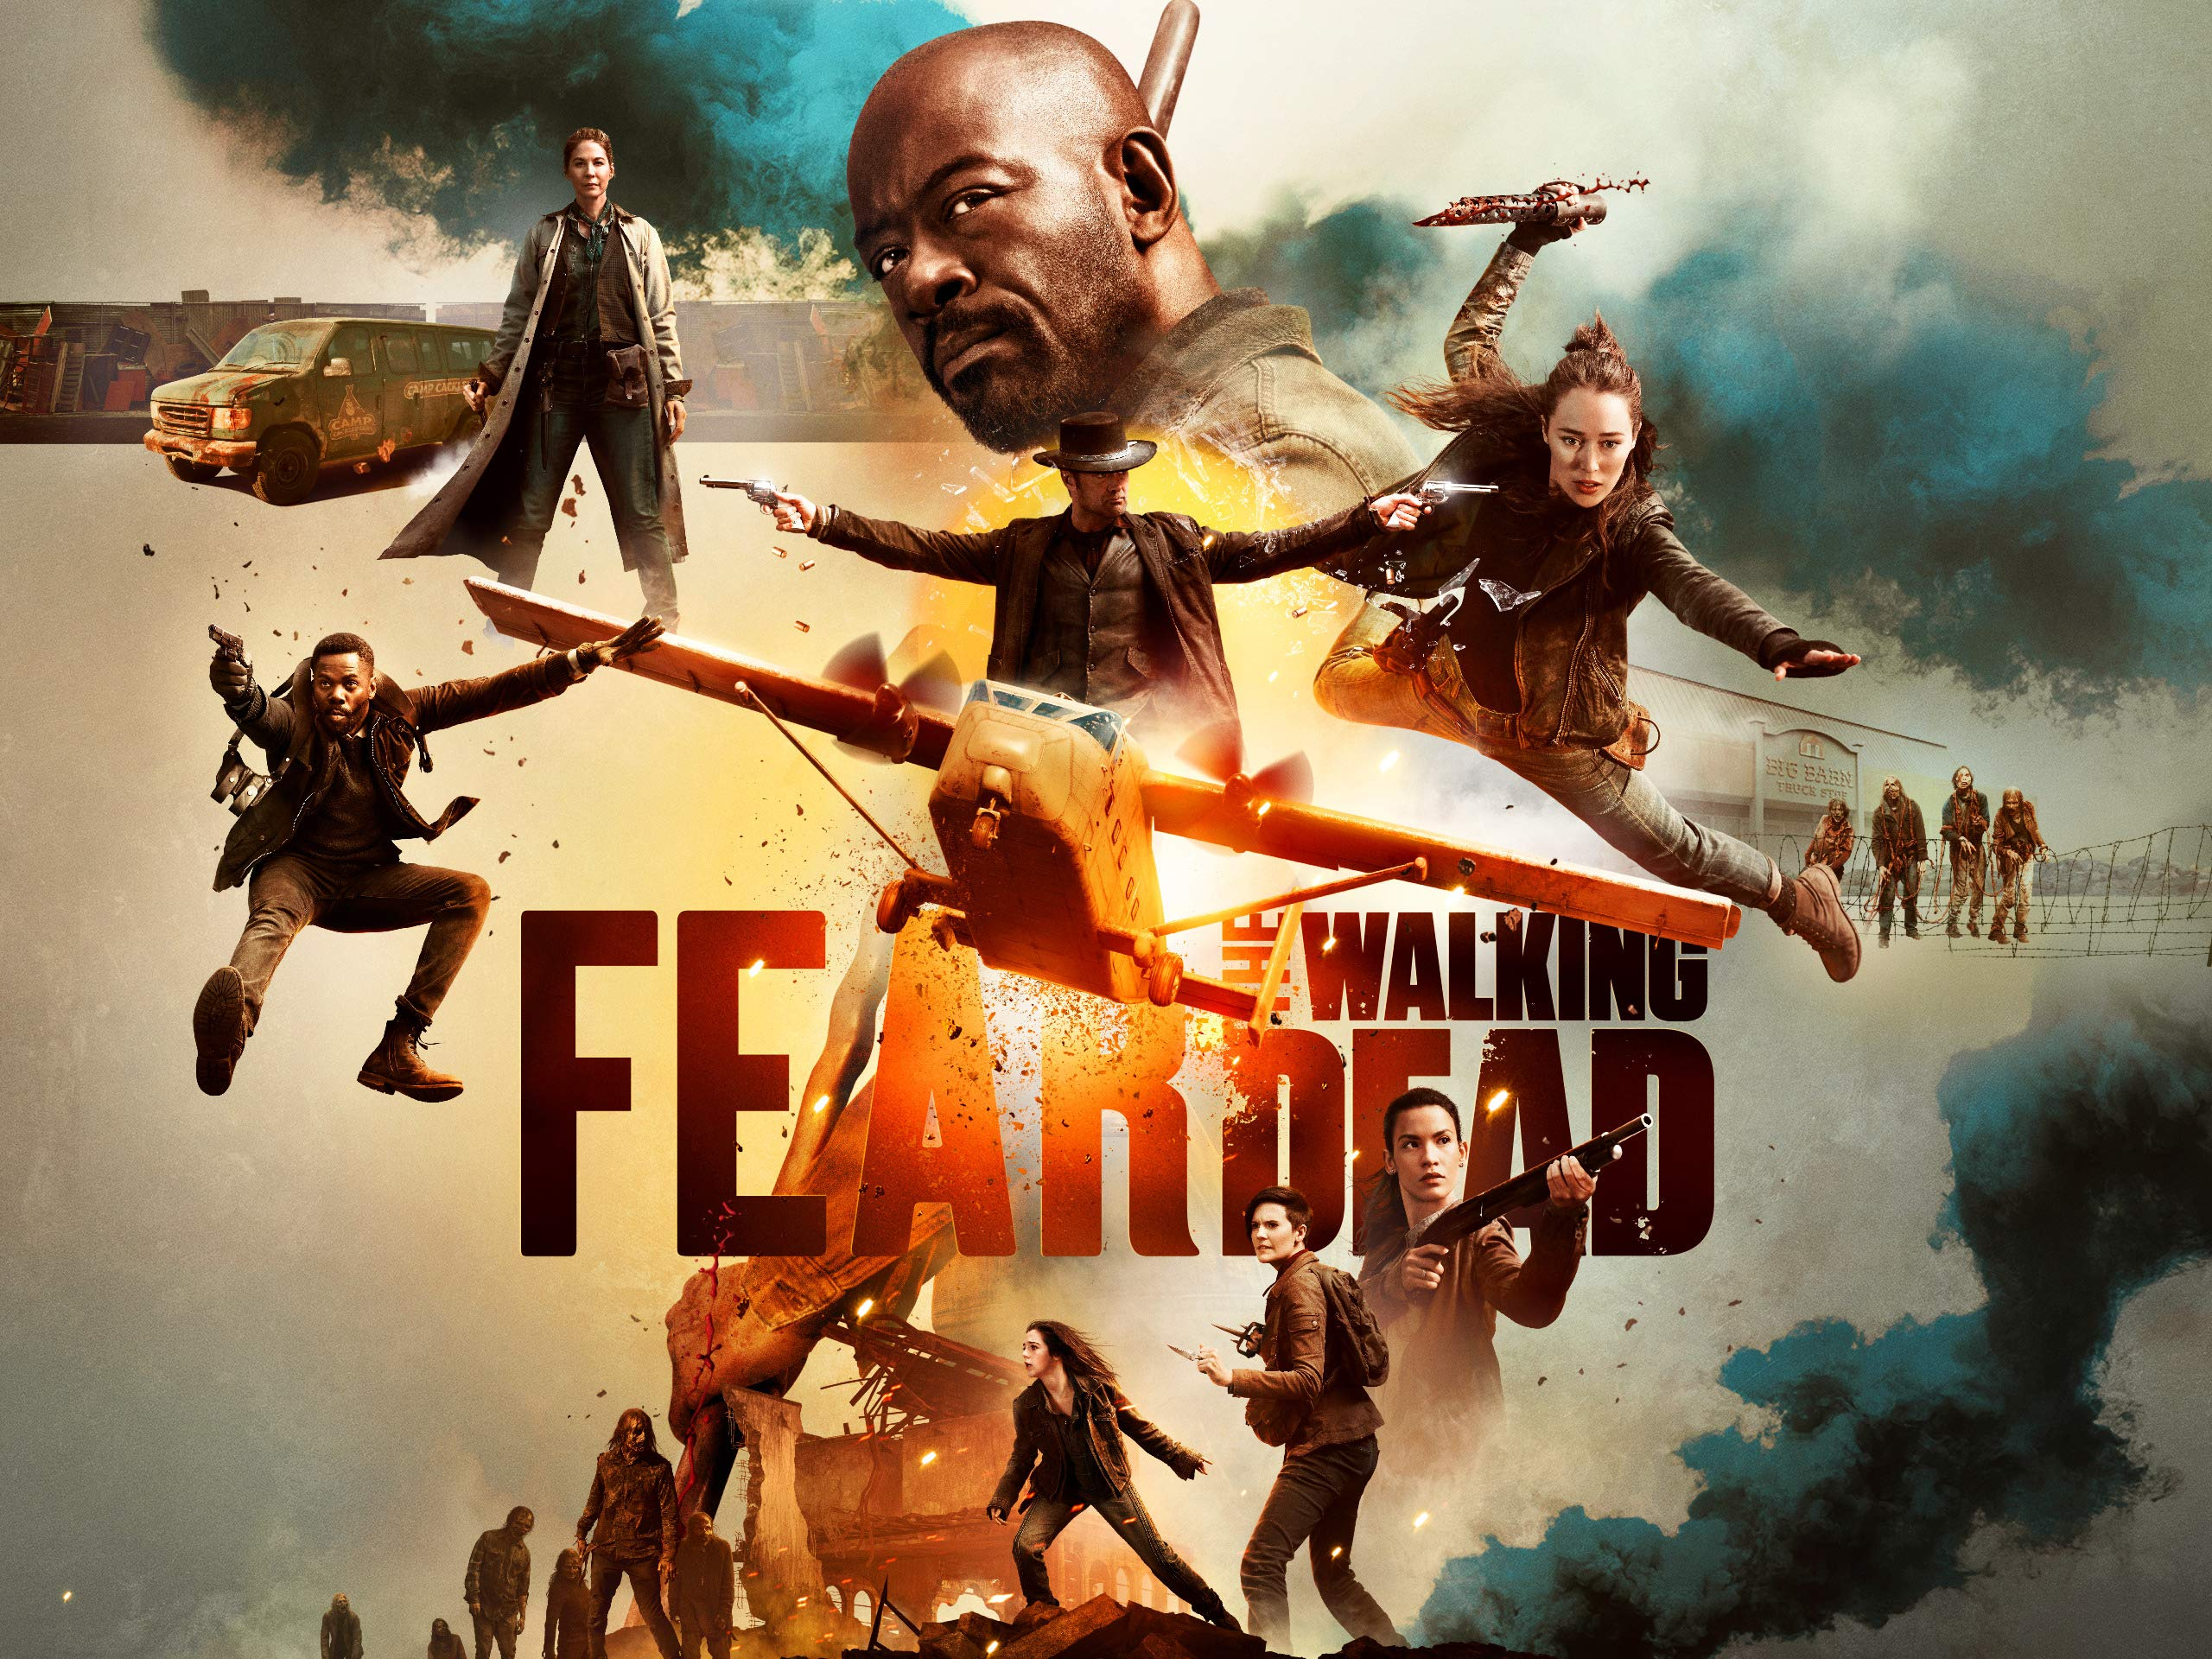 fear the walking dead season 2 episode 14 free online